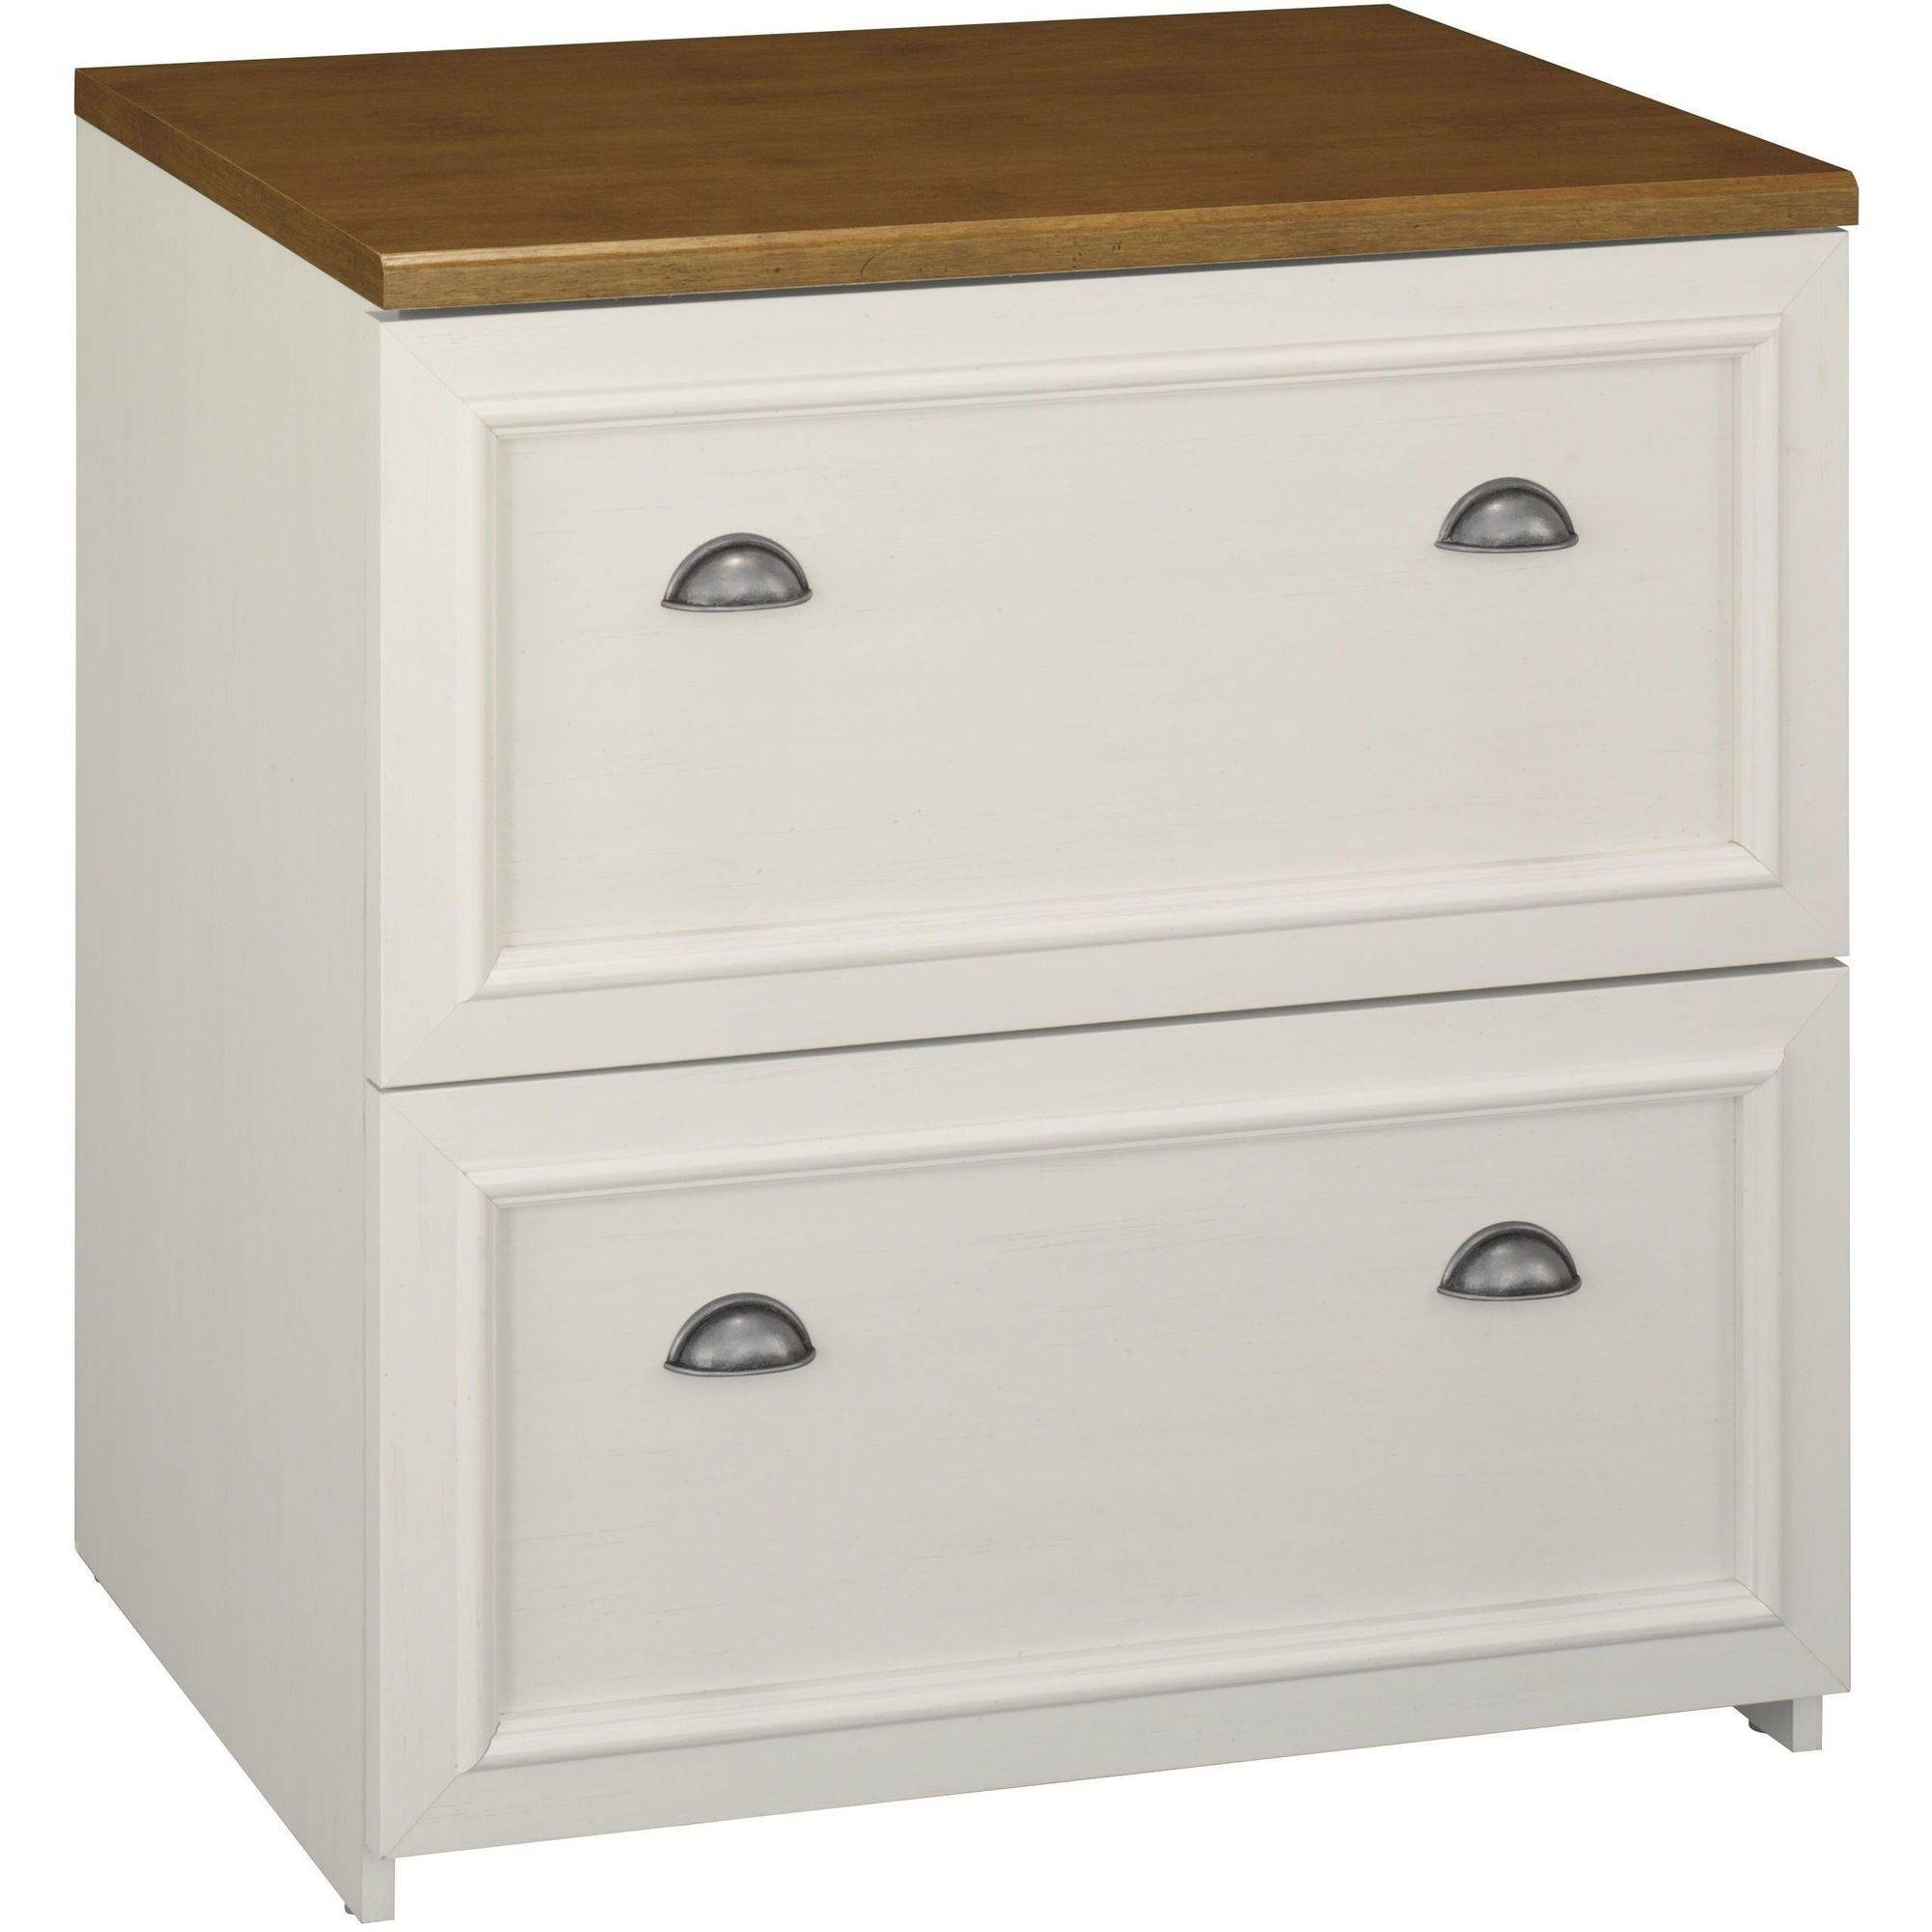 bush fairview collection lshaped desk hutch file cabinet antique white quick view bisley two drawer steel home or office filing